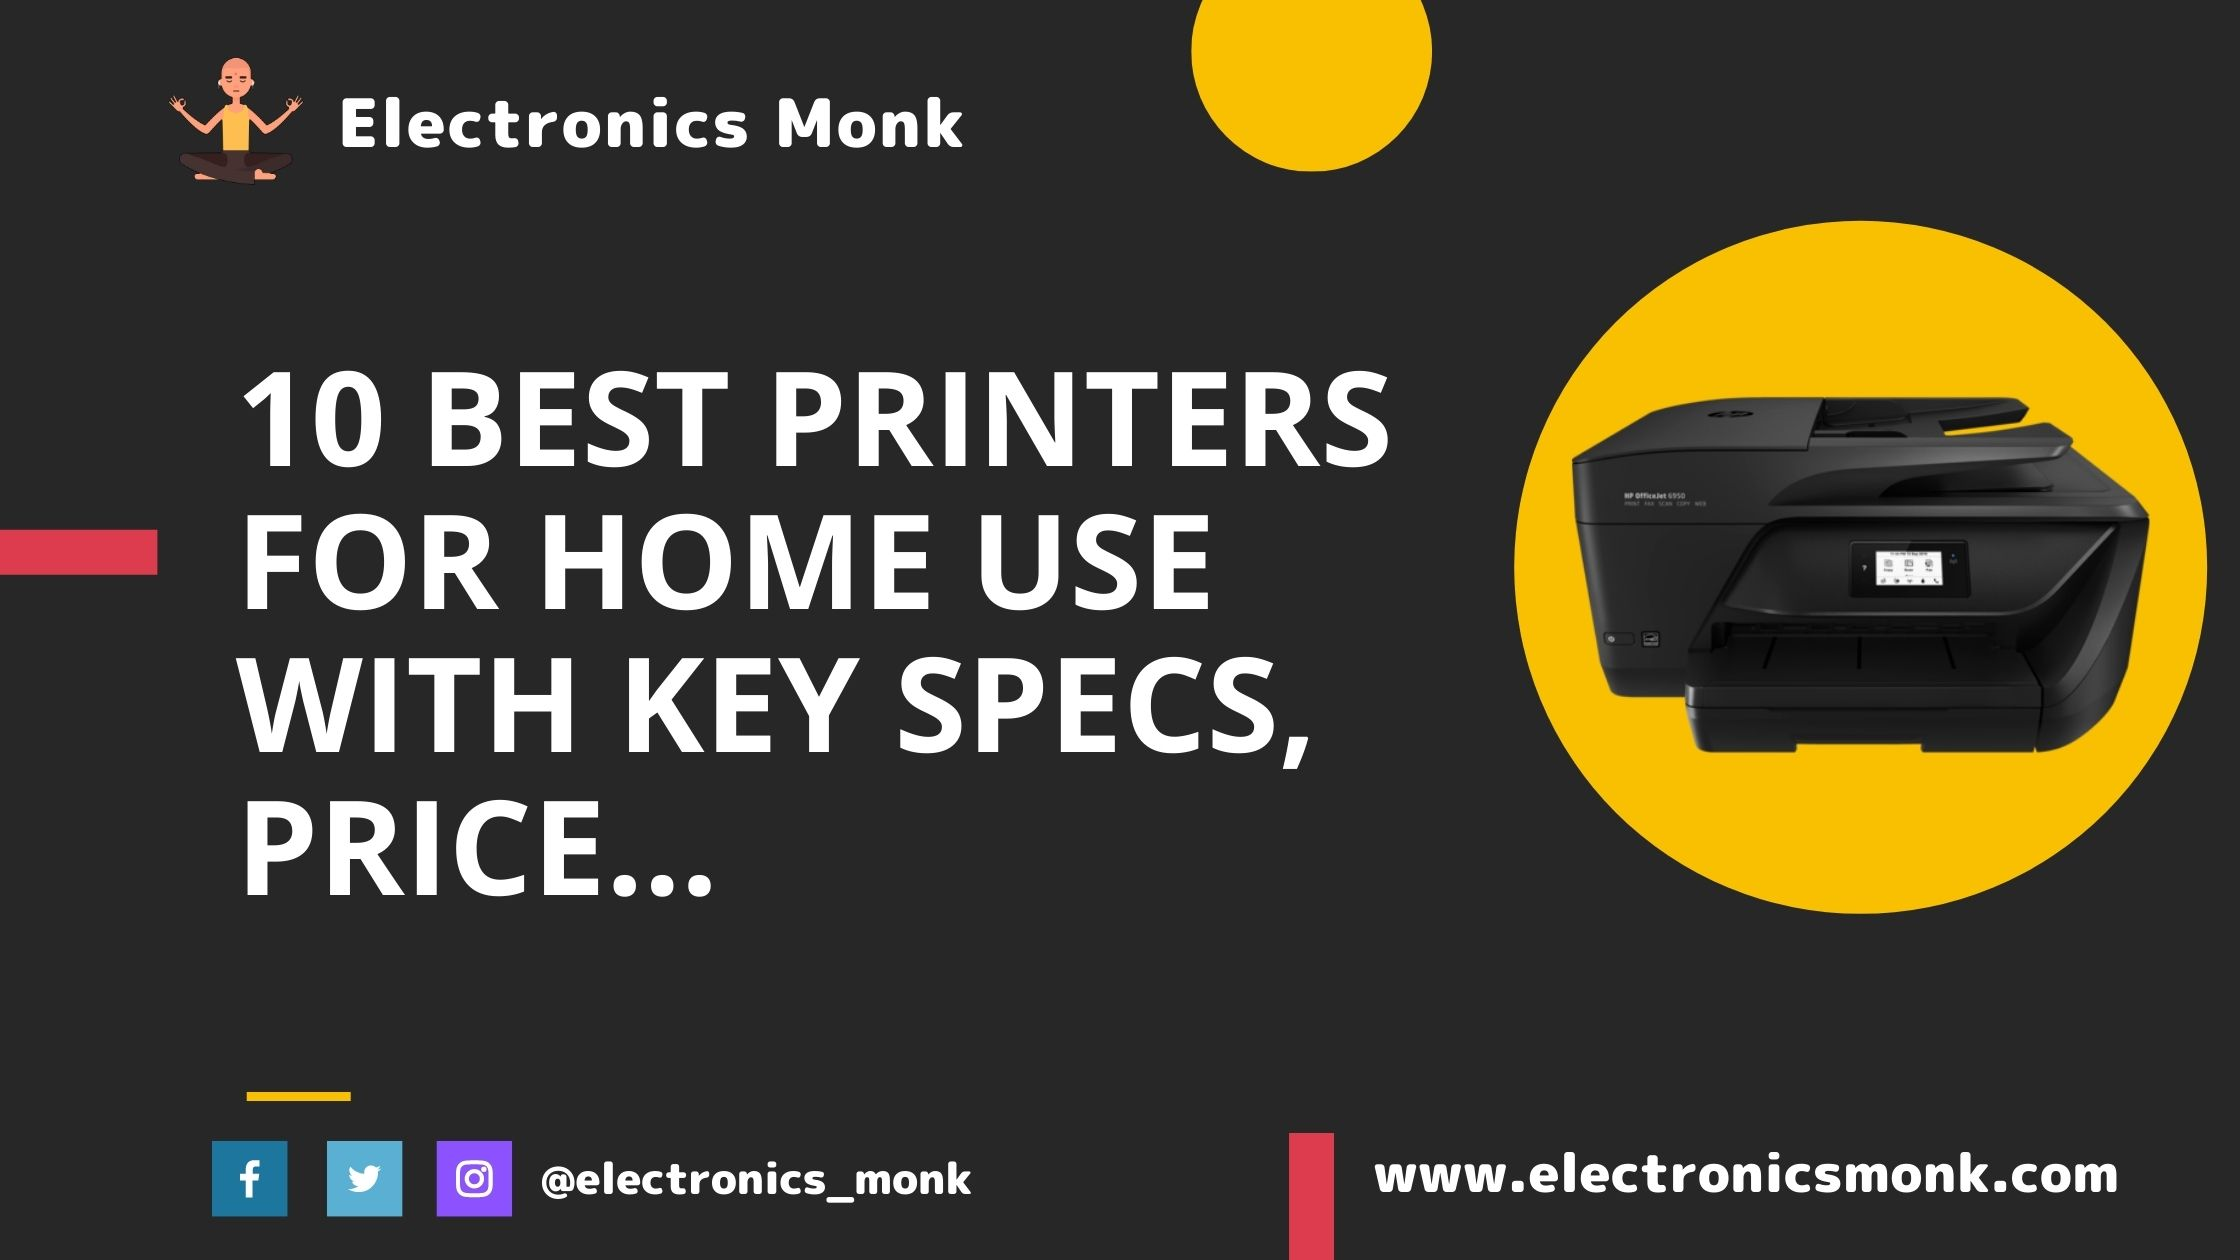 10 Best Printers for Home Use with Key Specs, Price